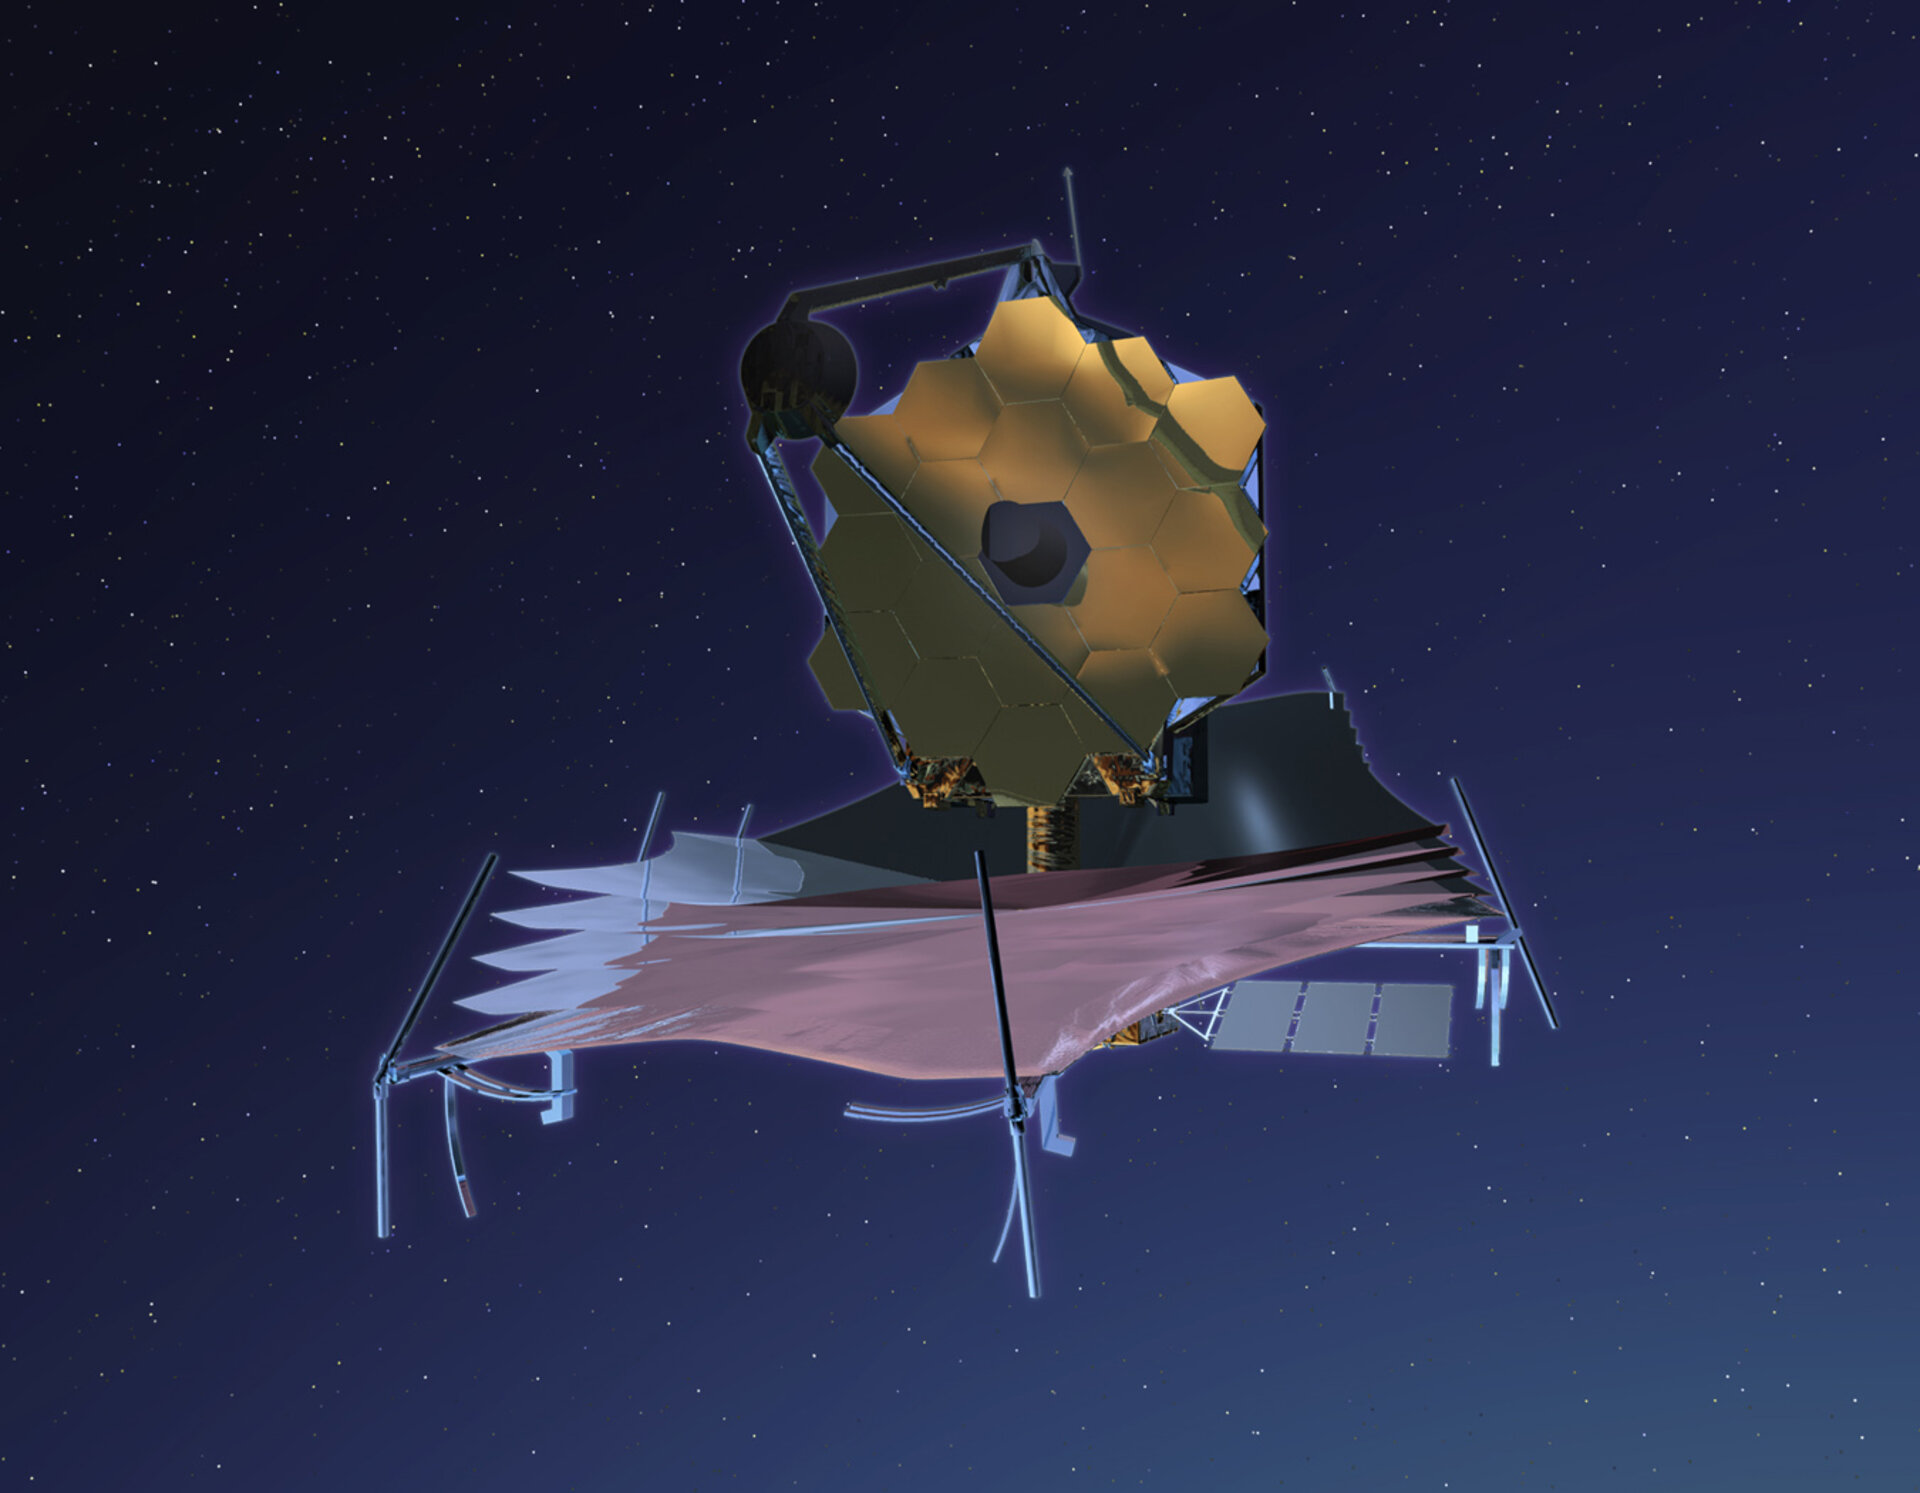 JWST in orbit